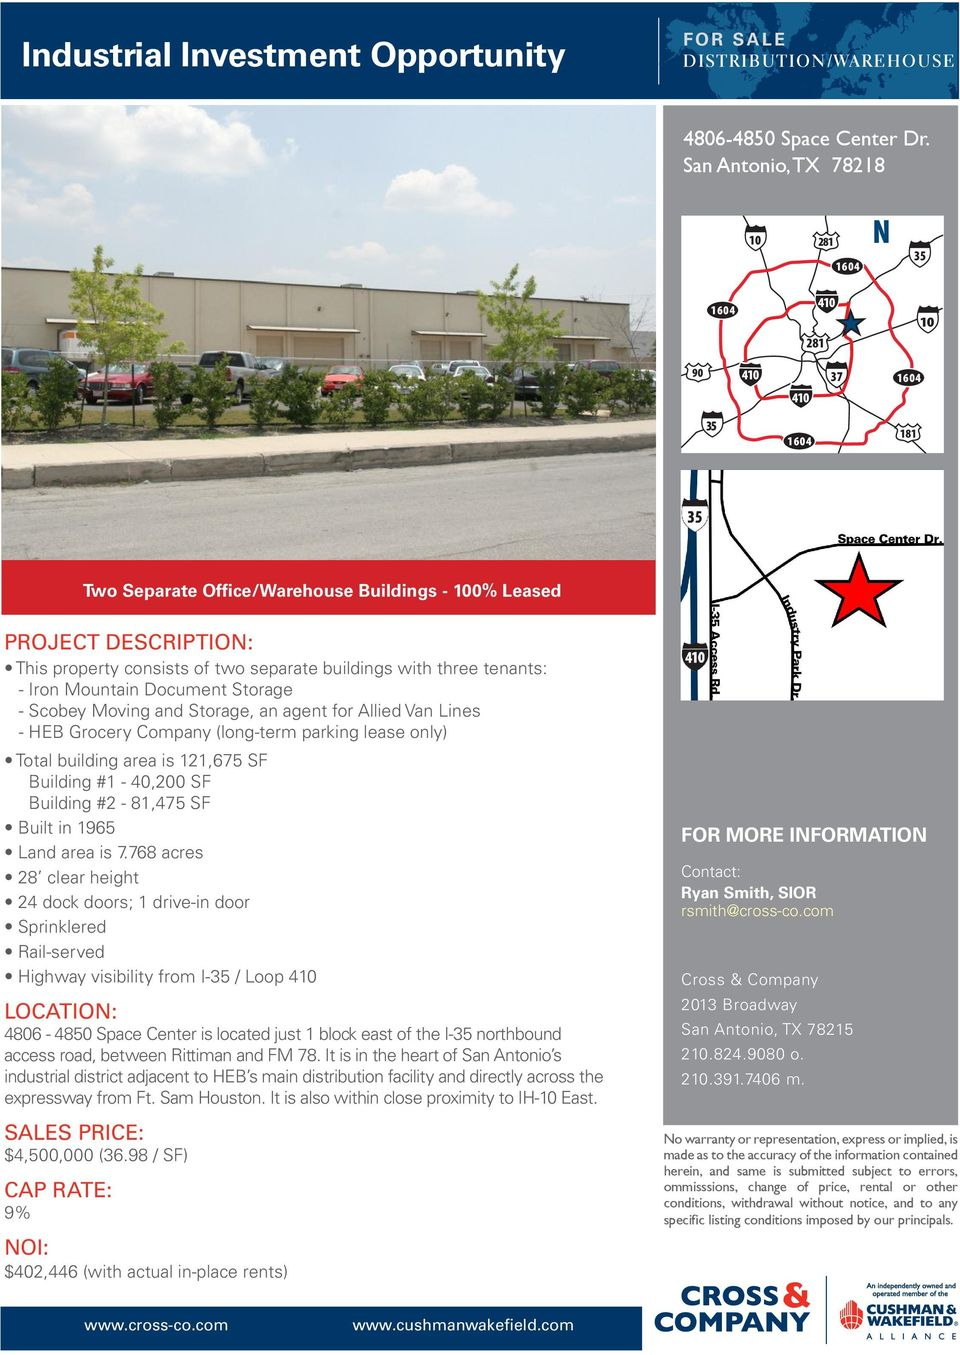 three tenants: - Iron Mountain Document Storage - Scobey Moving and Storage, an agent for Allied Van Lines - HEB Grocery Company (long-term parking lease only) Total building area is 121,675 SF